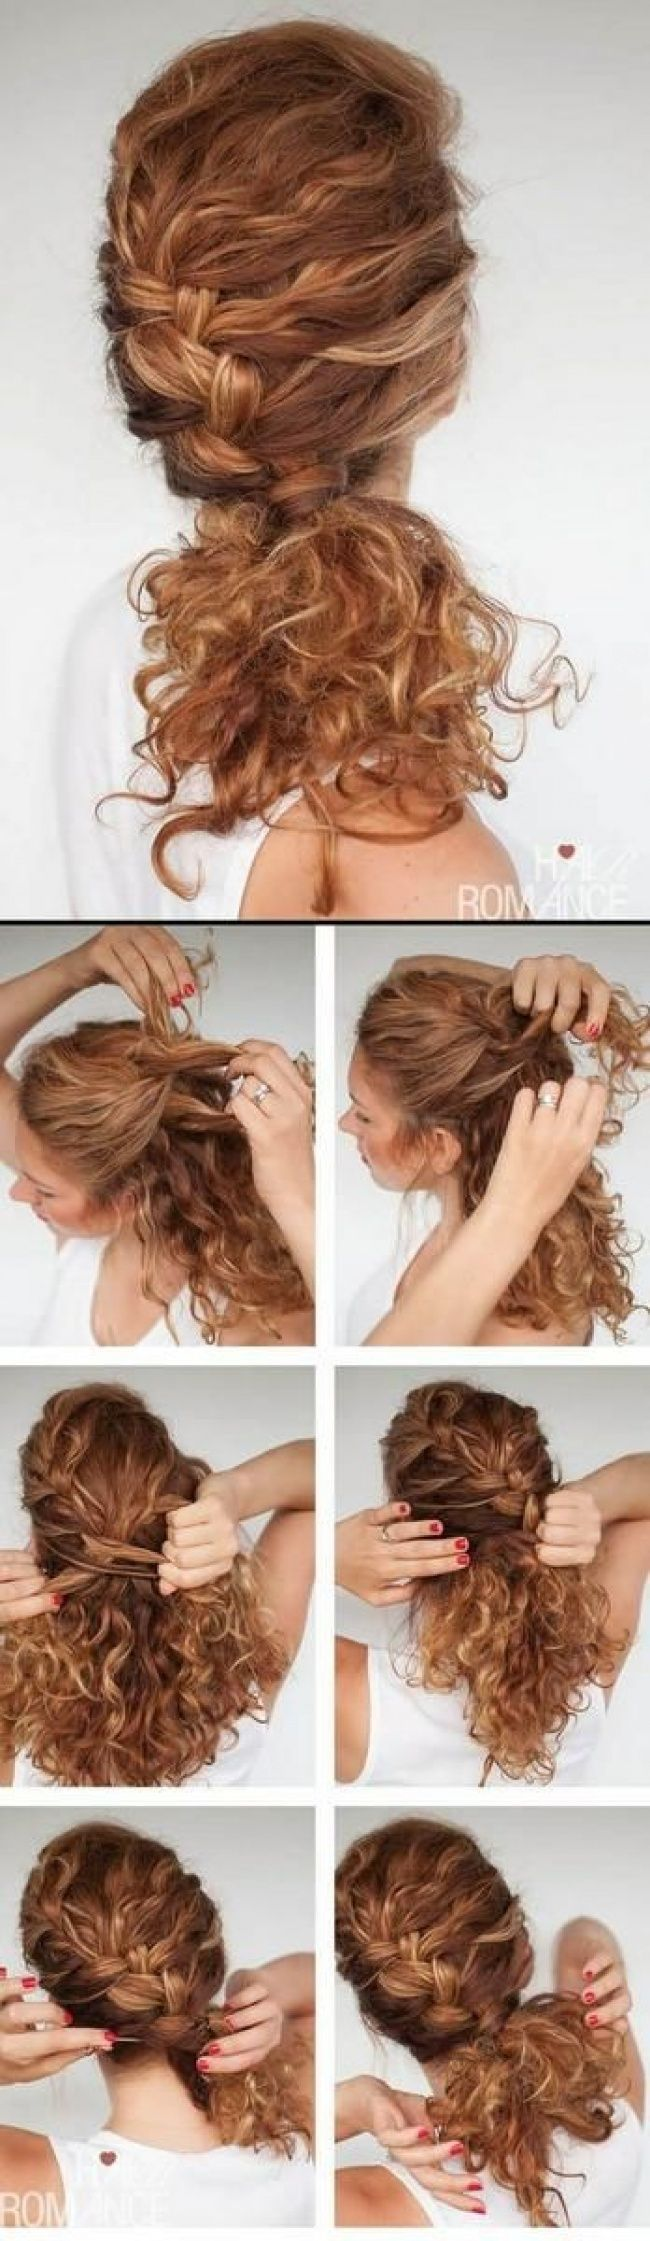 14 Fantastic Hairstyle Tutorials For Short And Naturally Curly Hair Curly Fantastic Hair Hairs Curly Hair Styles Naturally Curly Hair Styles Hair Tutorial